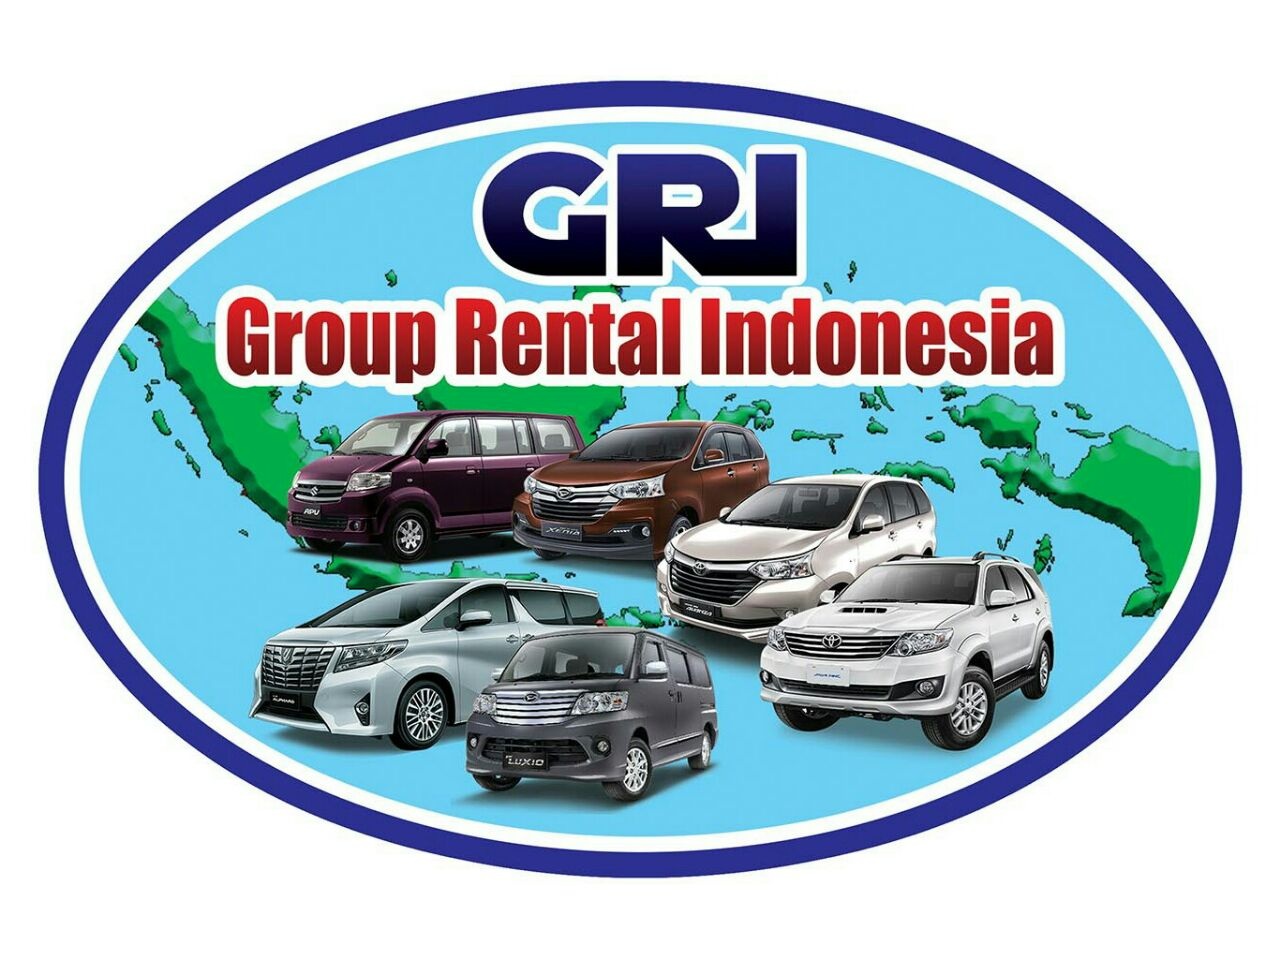 GROUP RENTAL INDONESIA